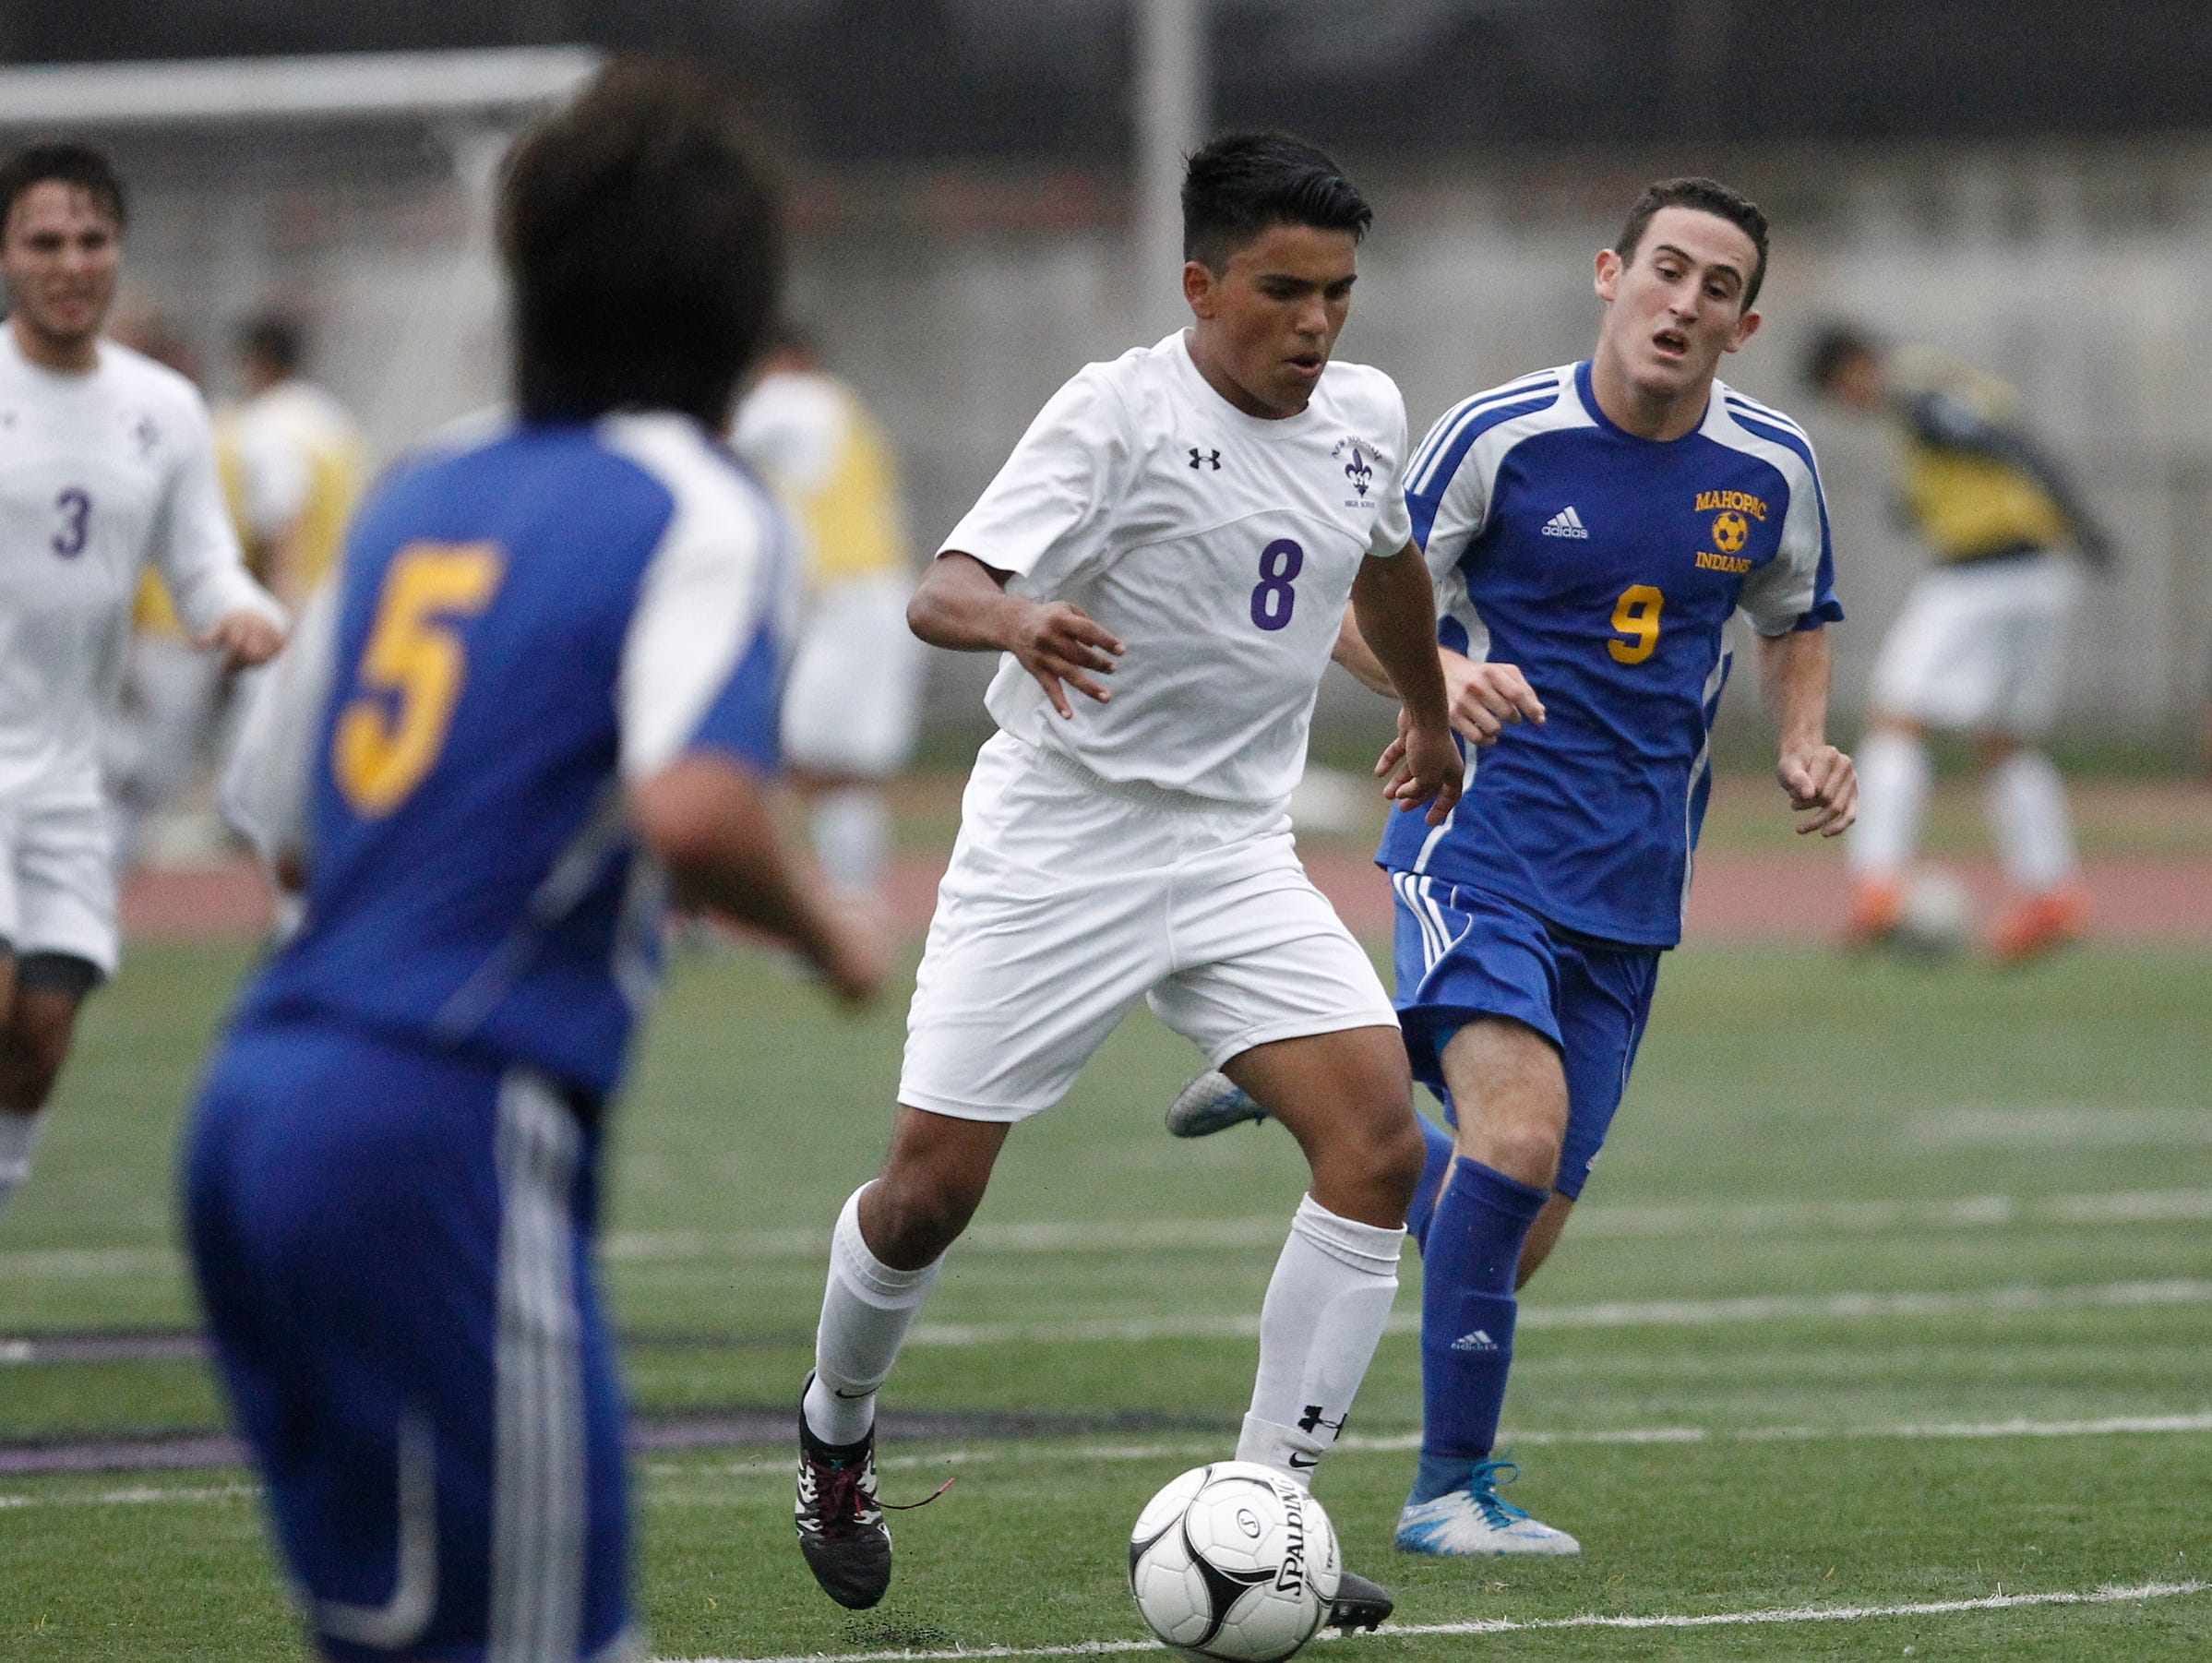 New Rochelle's Omar Espinoza (8) works the ball at mid-field as Mahopac's Max Lichtman (9) defends during the boys soccer Class AA first round at New Rochelle High School in New Rochelle on Thursday, October 20, 2016. New Rochelle advances with their 2-0 win.